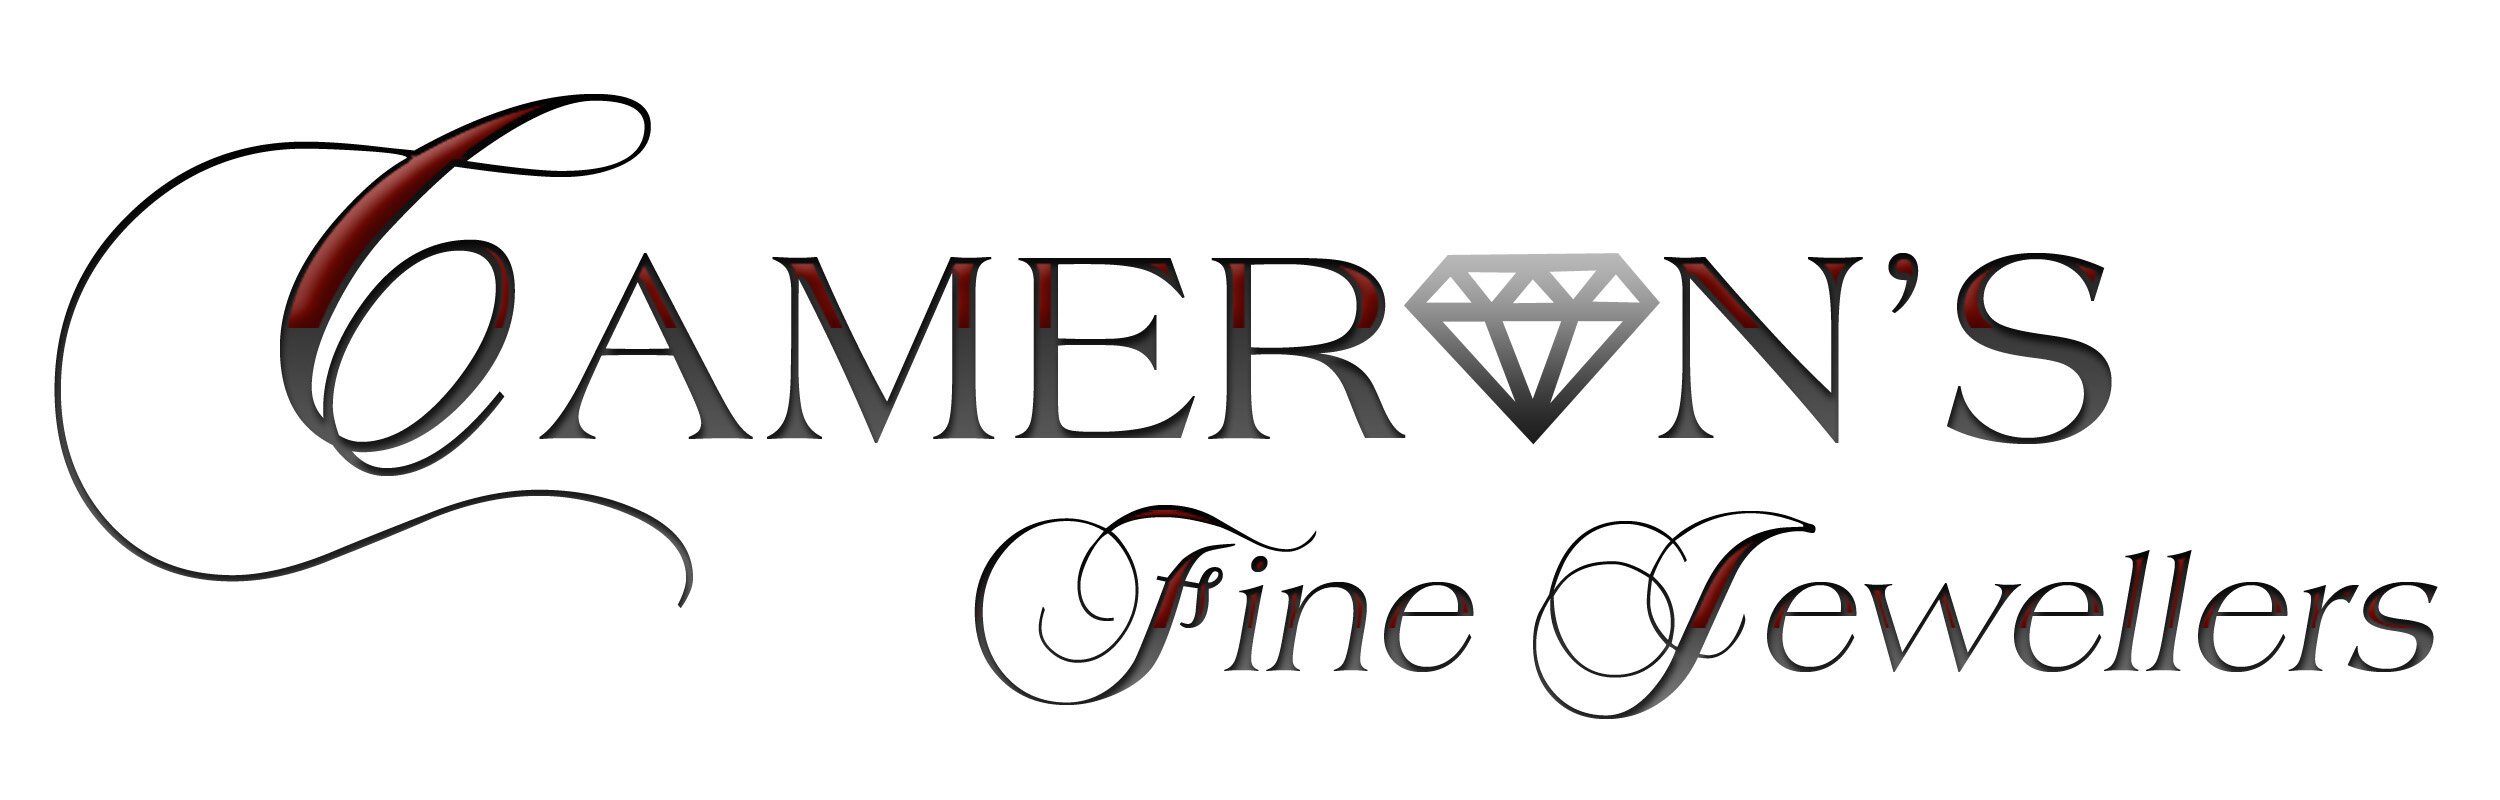 Cameron's Fine Jewellers   At Cameron's Fine Jewellers you will find  1/2 price watches as well as 1/2   on Swarovski, Ellani, Silver & Gold Jewellery